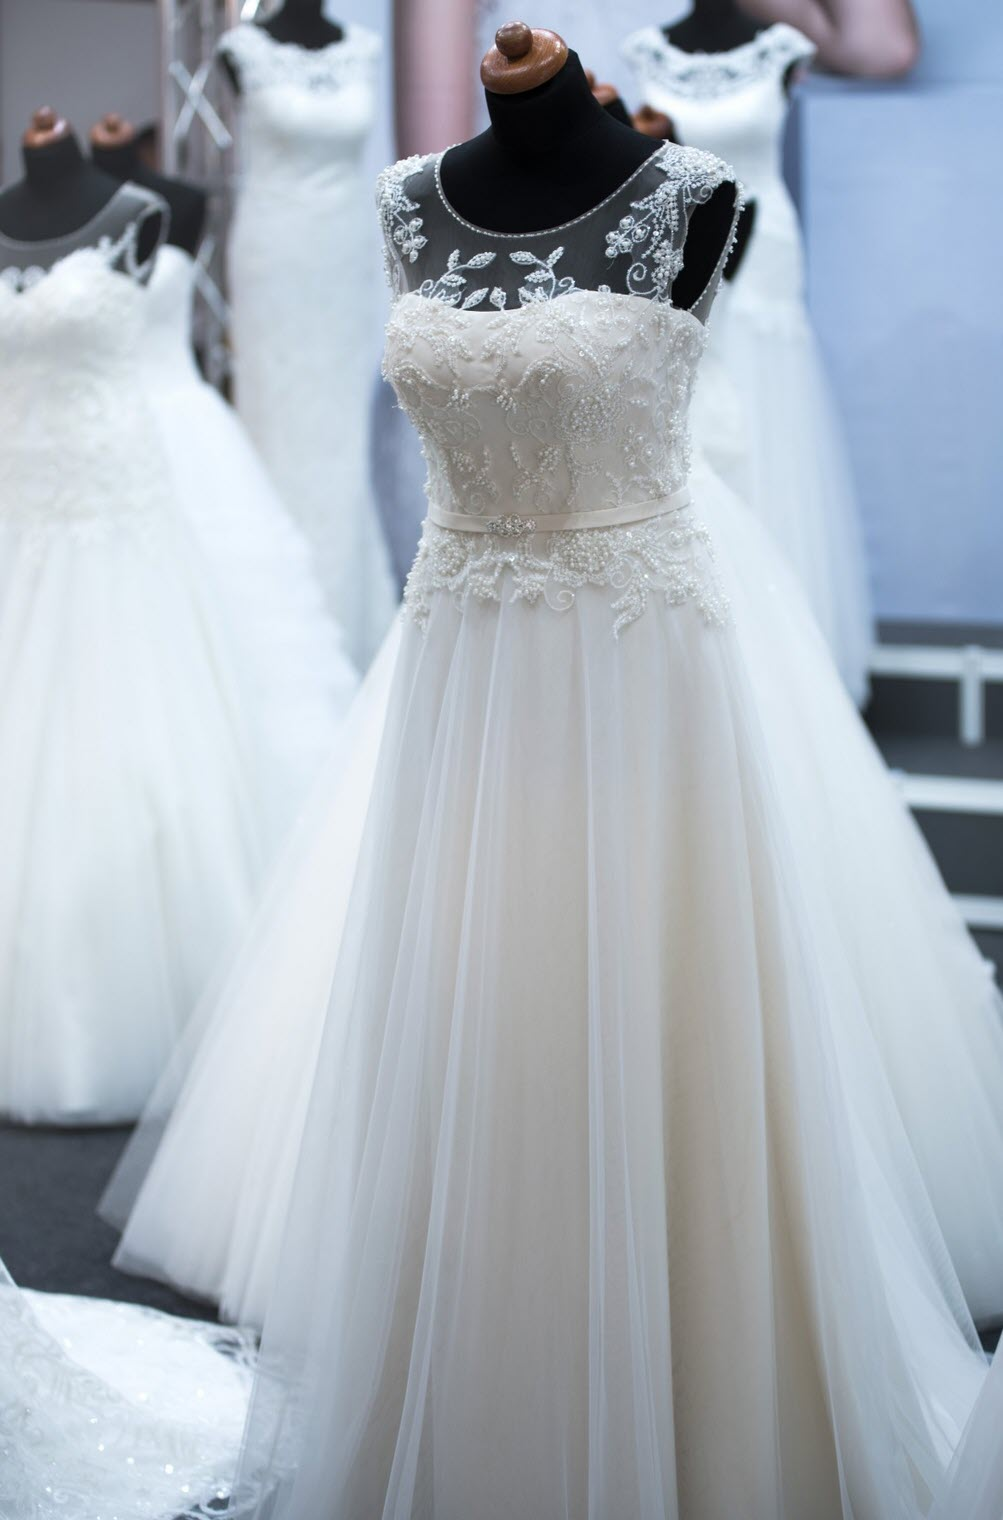 Wedding dress cleaning service stamford greenwich for Cleaning and preserving wedding dress